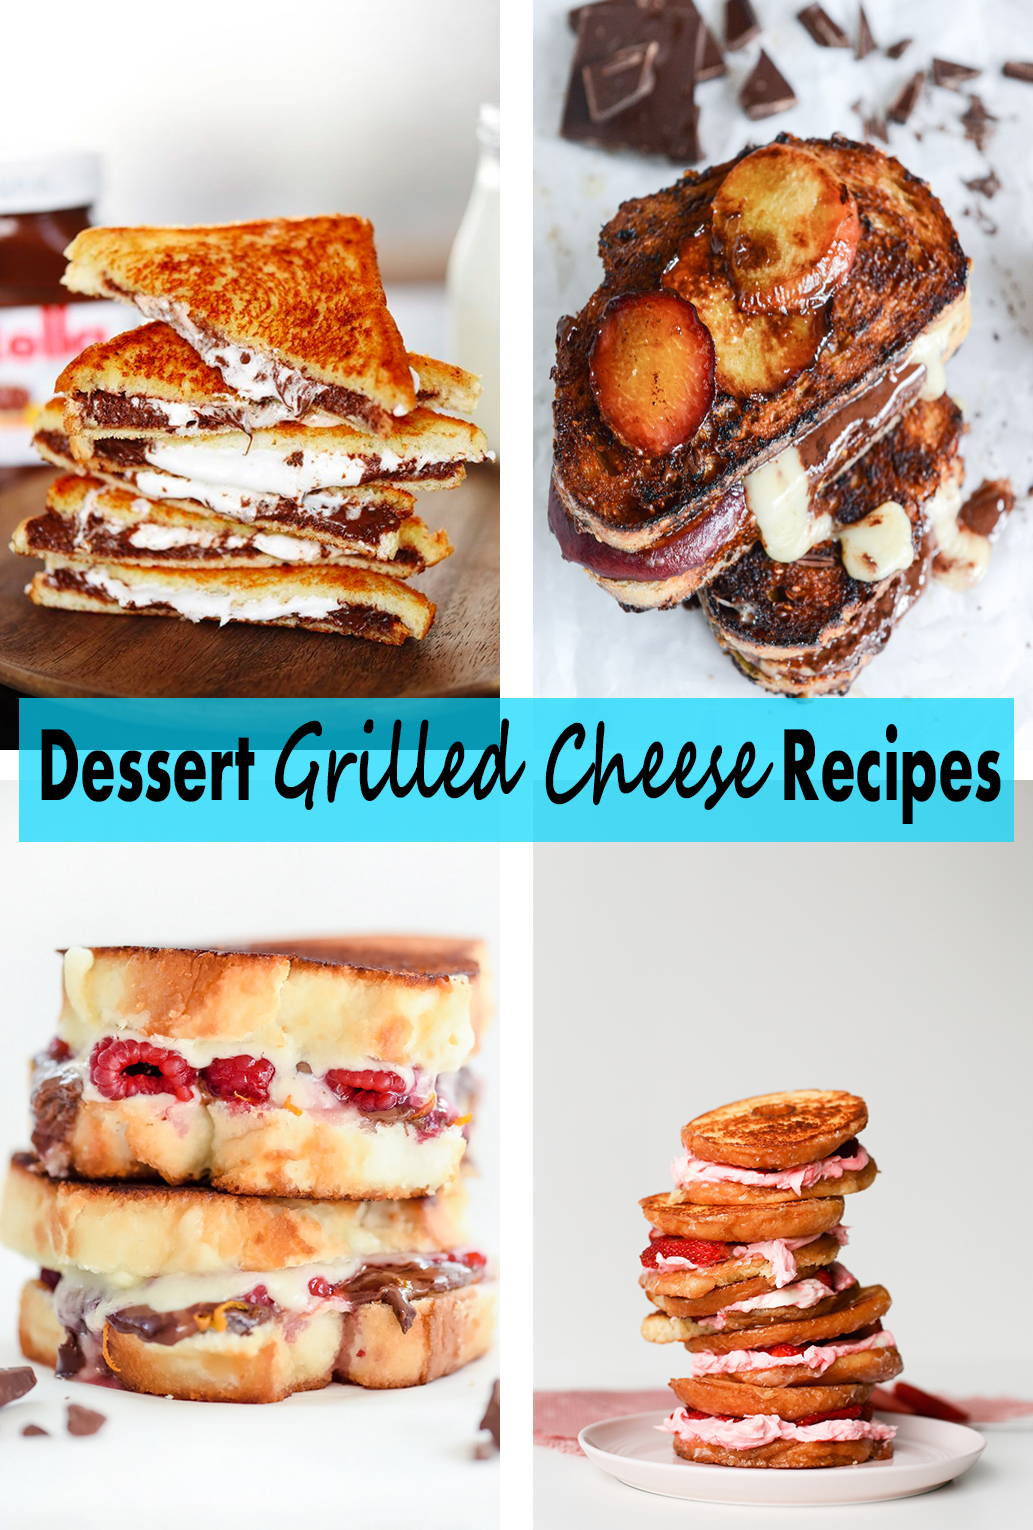 Dessert Grilled Cheese Recipes | http://www.roseclearfield.com